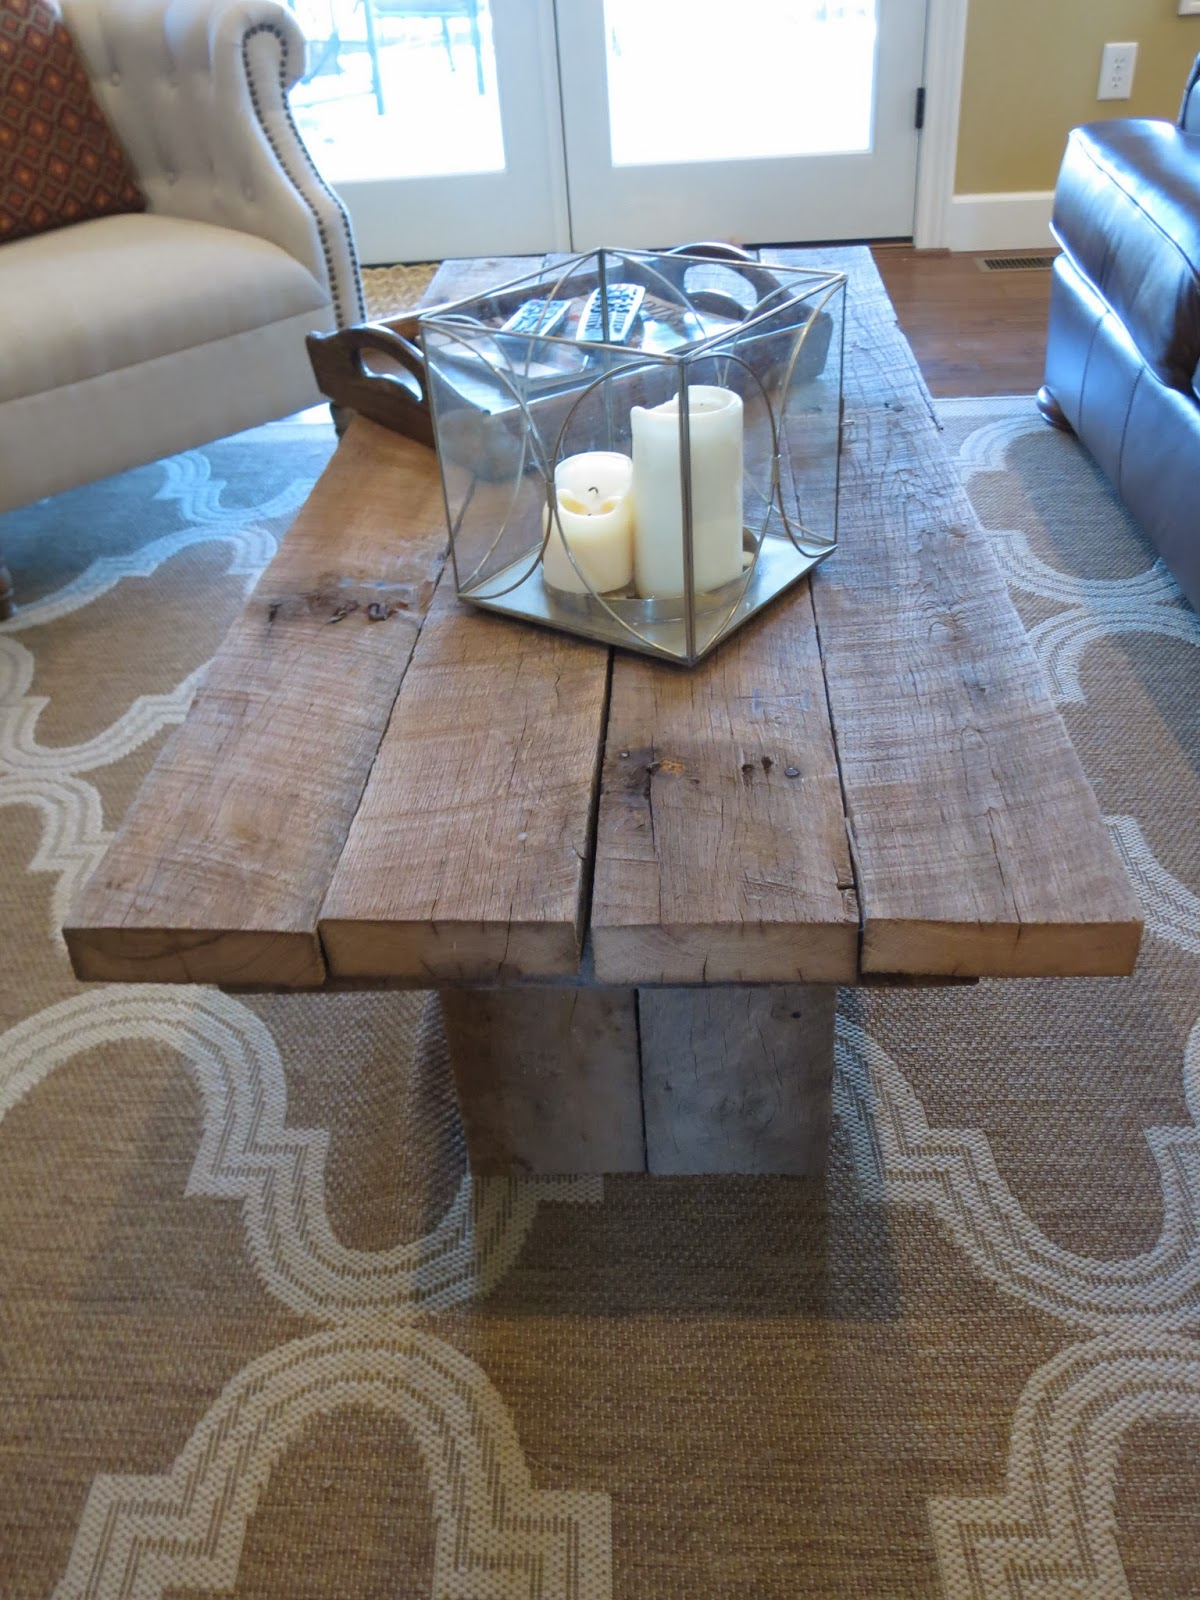 Let s Just Build a House Tale of 2 tables a golden deal & a DIY